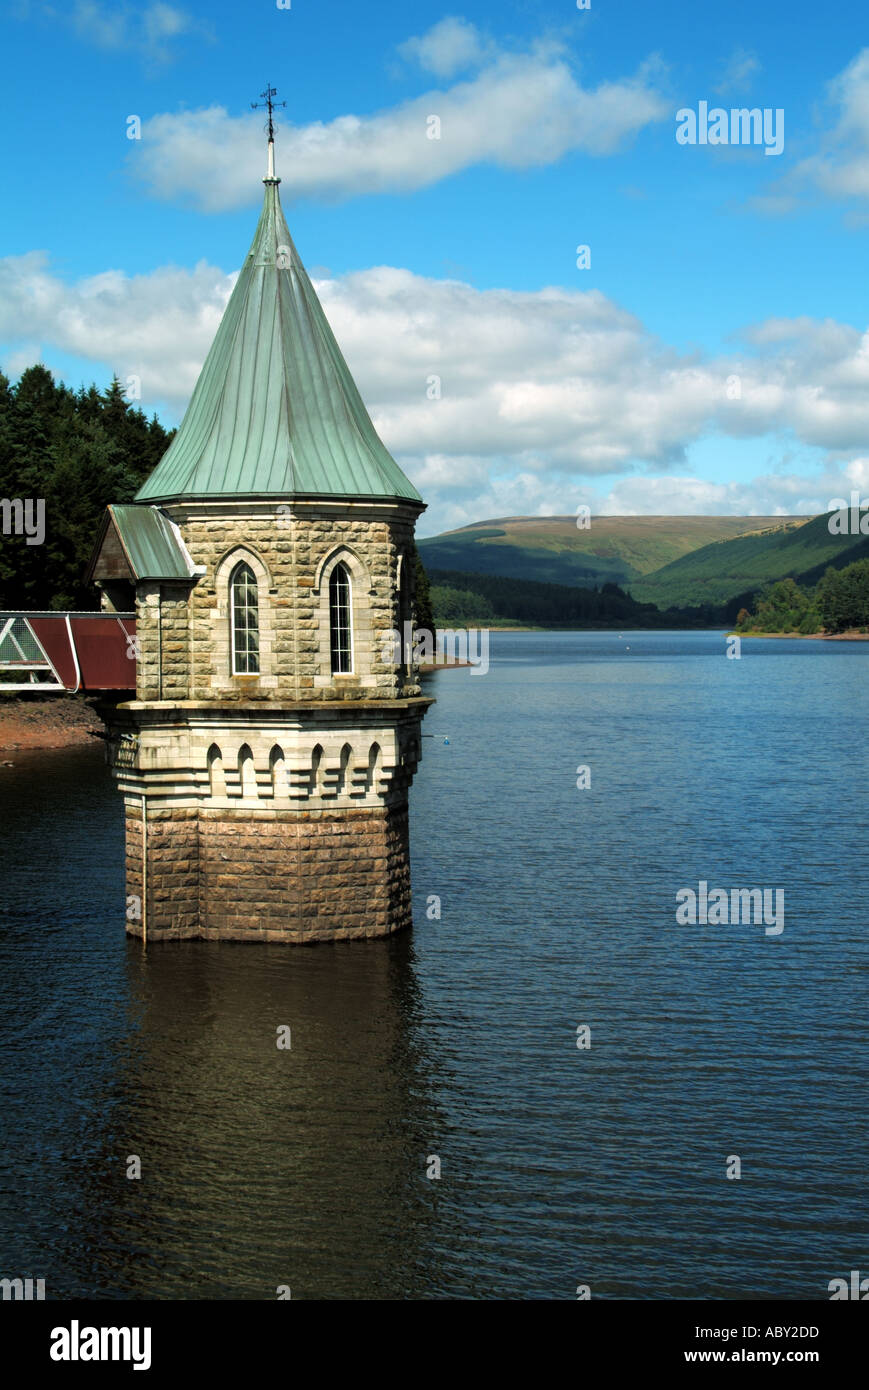 Draw off valve tower Welsh Waters Pontsticill Reservoir in the Brecon Beacons National Park & Fforest Fawr Geopark Stock Photo